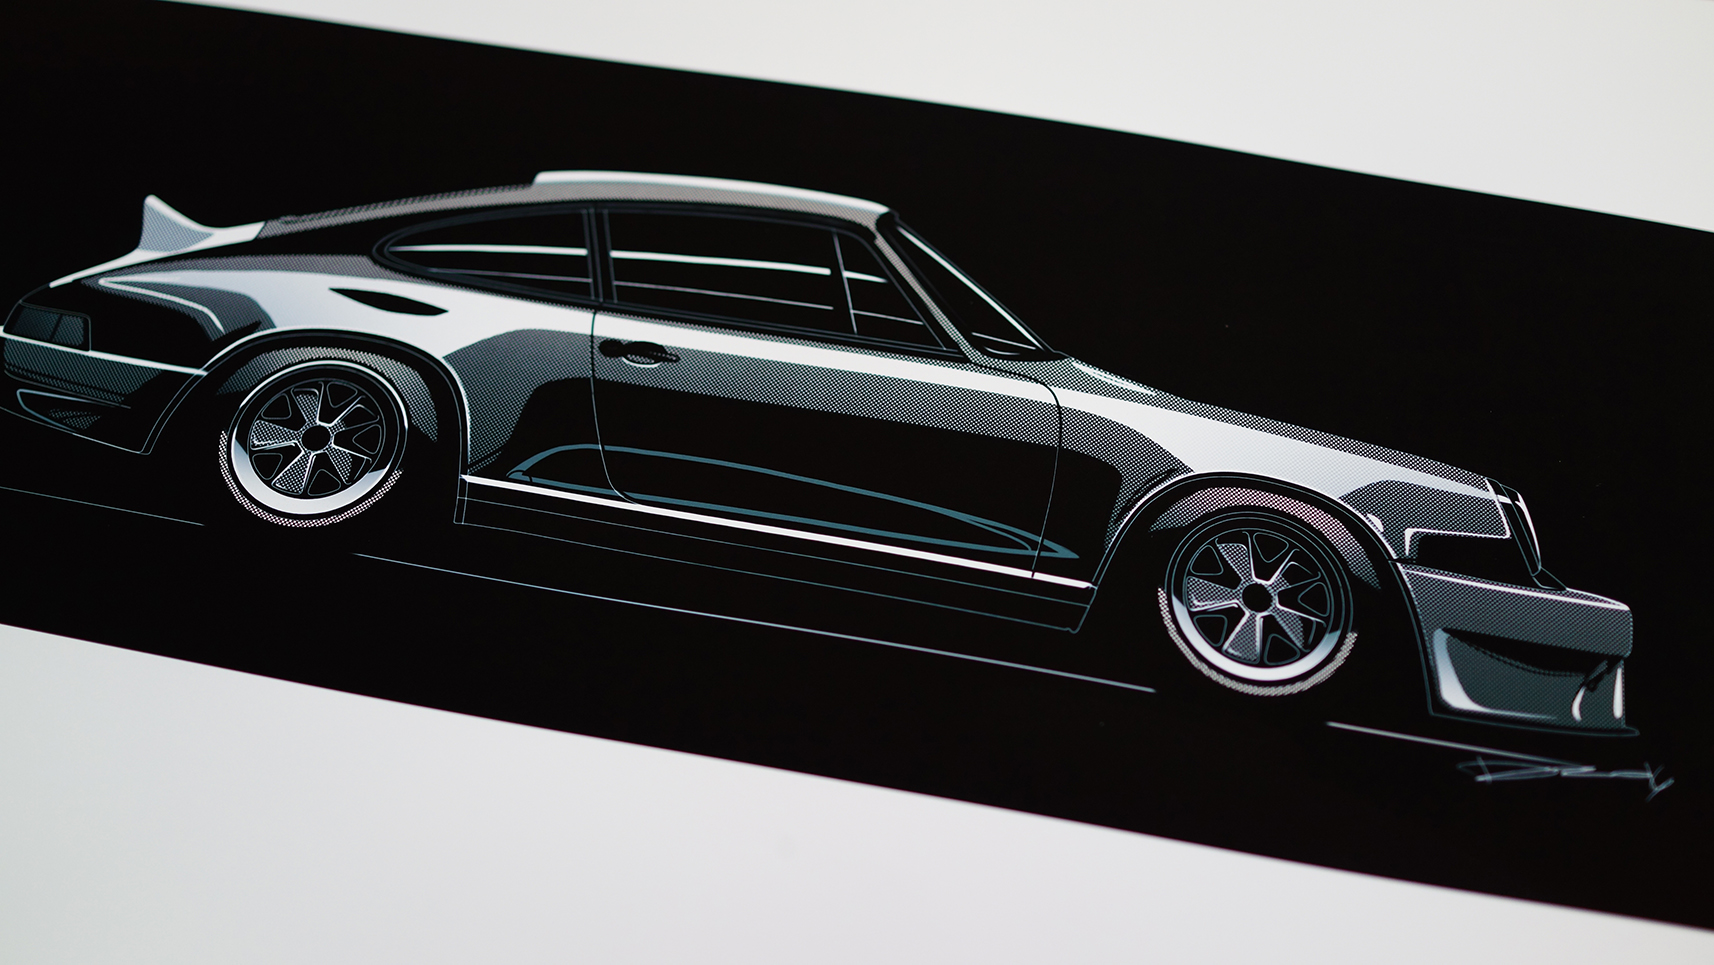 b w porsche 911 sideview 20 piece limited run dsalnidrawn online store powered by storenvy. Black Bedroom Furniture Sets. Home Design Ideas